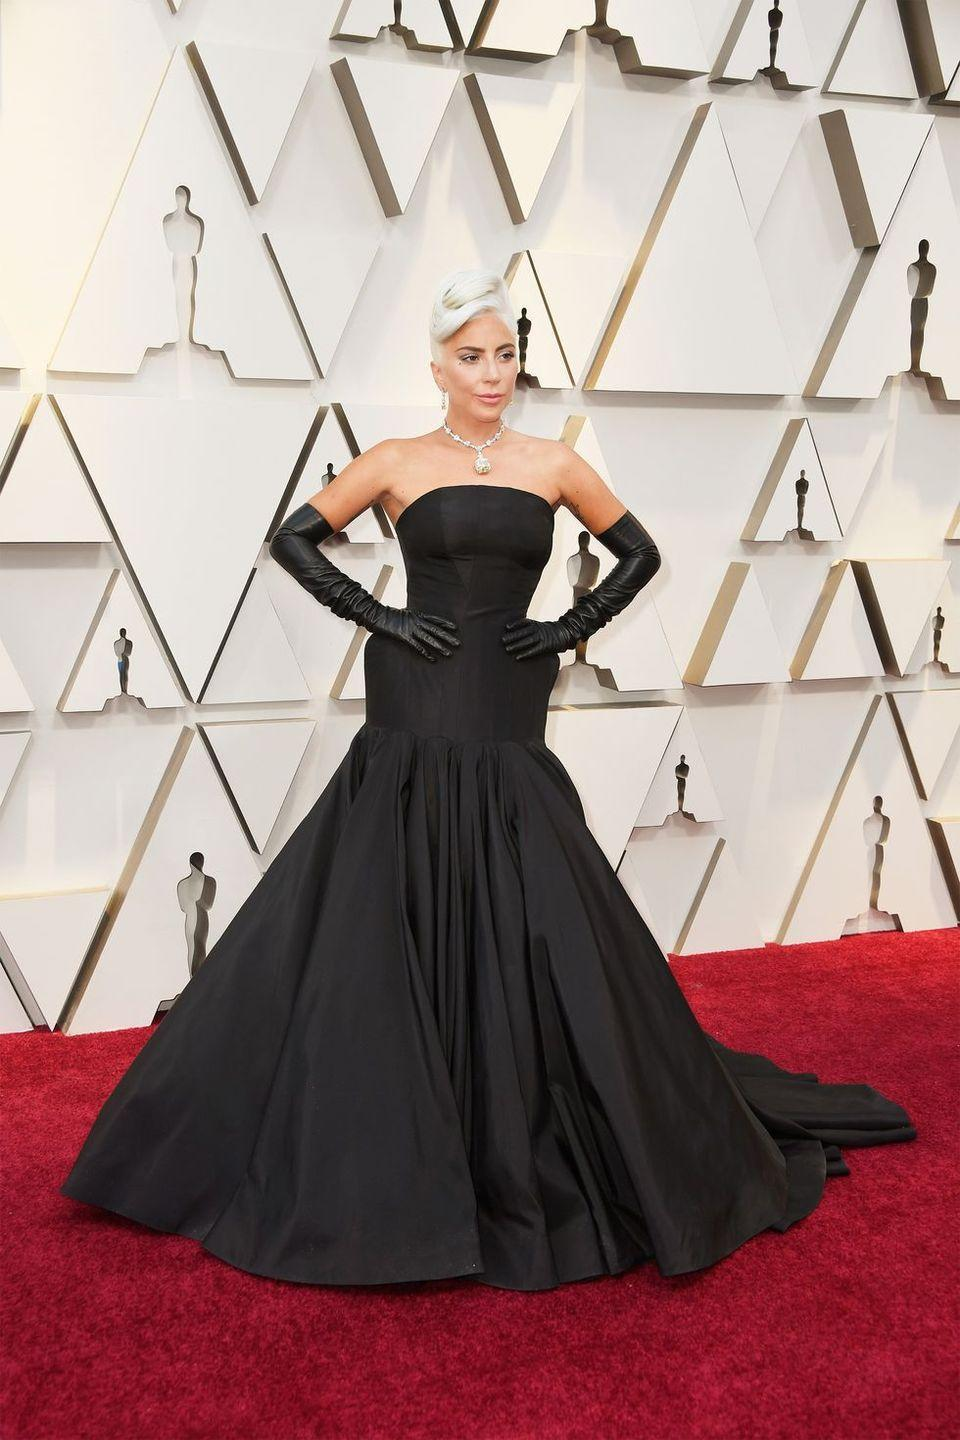 """<p>Lady Gaga <a href=""""https://www.harpersbazaar.com/celebrity/red-carpet-dresses/a26500166/lady-gaga-audrey-hepburn-oscars-2019/"""" rel=""""nofollow noopener"""" target=""""_blank"""" data-ylk=""""slk:channelled Audrey Hepburn"""" class=""""link rapid-noclick-resp"""">channelled Audrey Hepburn</a> in a breath-taking, custom, sculptural black gown by Alexander McQueen. She paired the look with a 128-carat <a href=""""https://www.harpersbazaar.com/celebrity/red-carpet-dresses/a26362164/lady-gaga-oscars-2019-tiffany-diamond/"""" rel=""""nofollow noopener"""" target=""""_blank"""" data-ylk=""""slk:Tiffany diamond necklace"""" class=""""link rapid-noclick-resp"""">Tiffany diamond necklace</a> and perfectly Gaga elbow-length black leather gloves.</p>"""